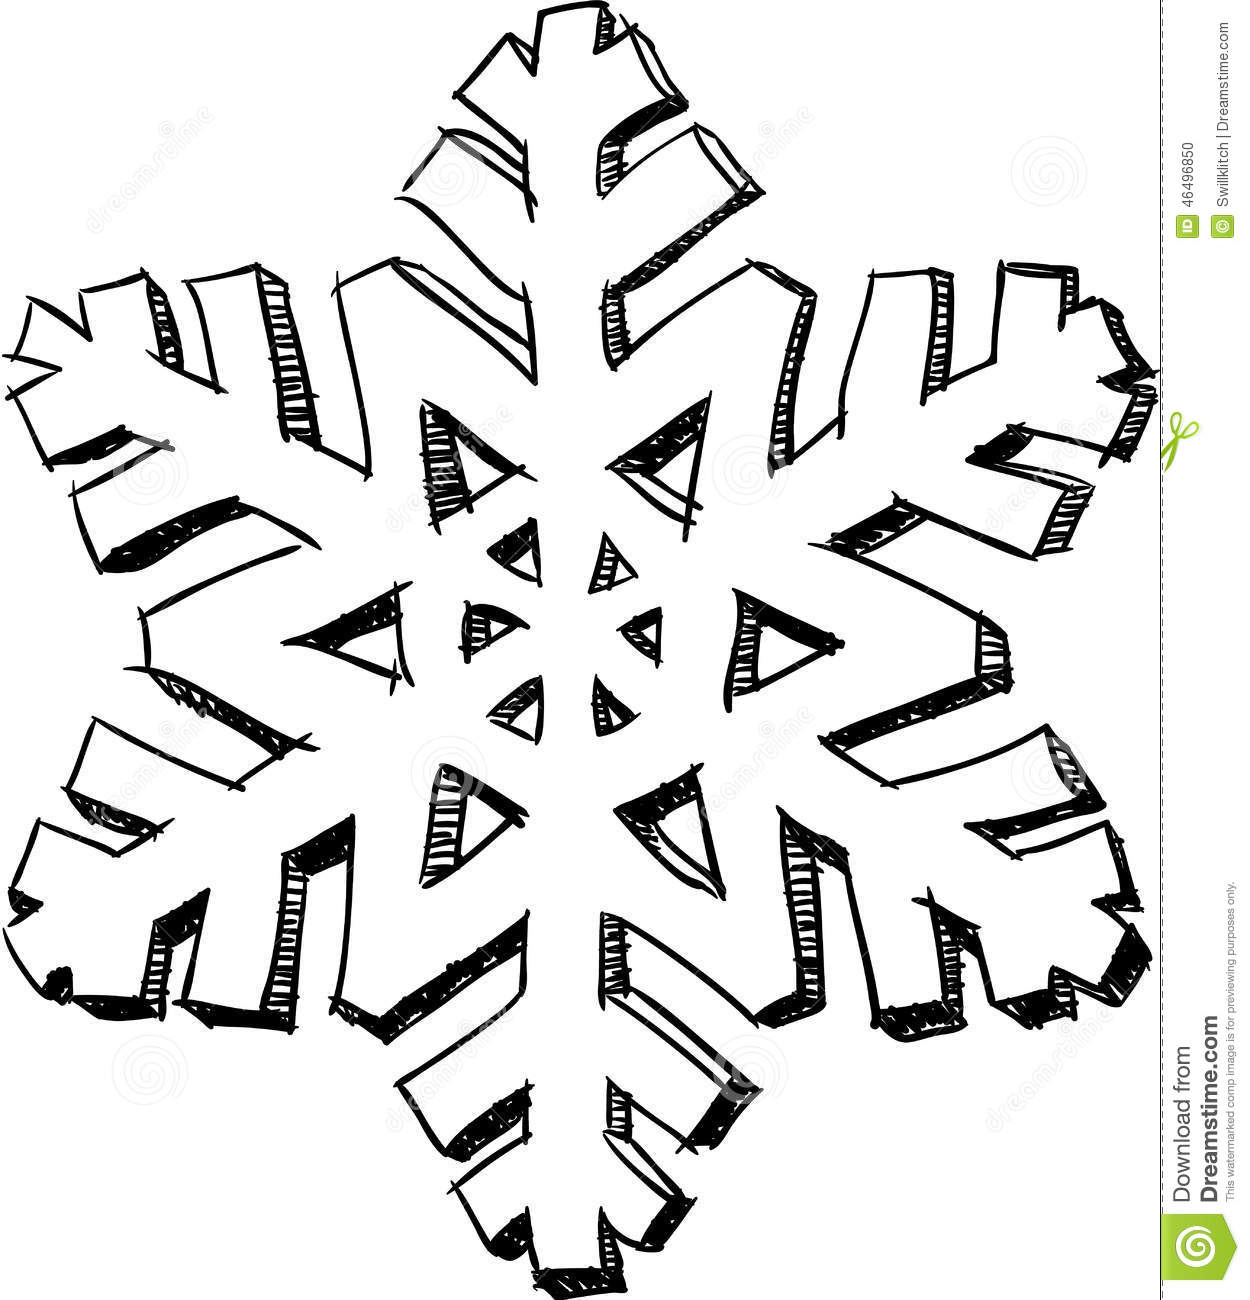 Snowflake sketch stock vector. Illustration of label ...